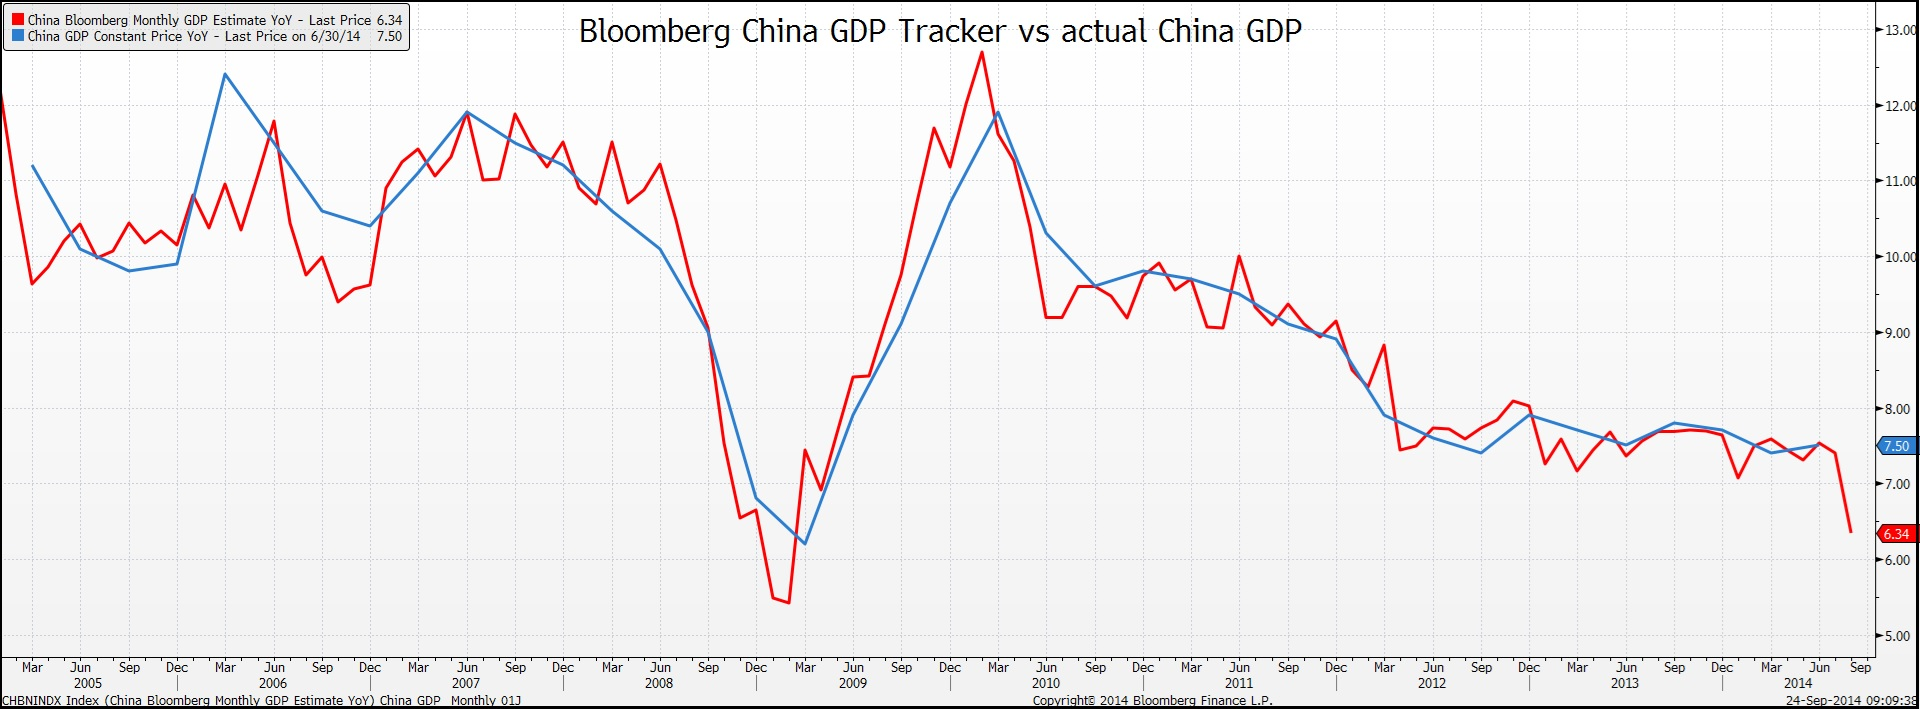 Bloomberg_CN_GDP_Tracker_vs_actual_CN_GDP.jpg